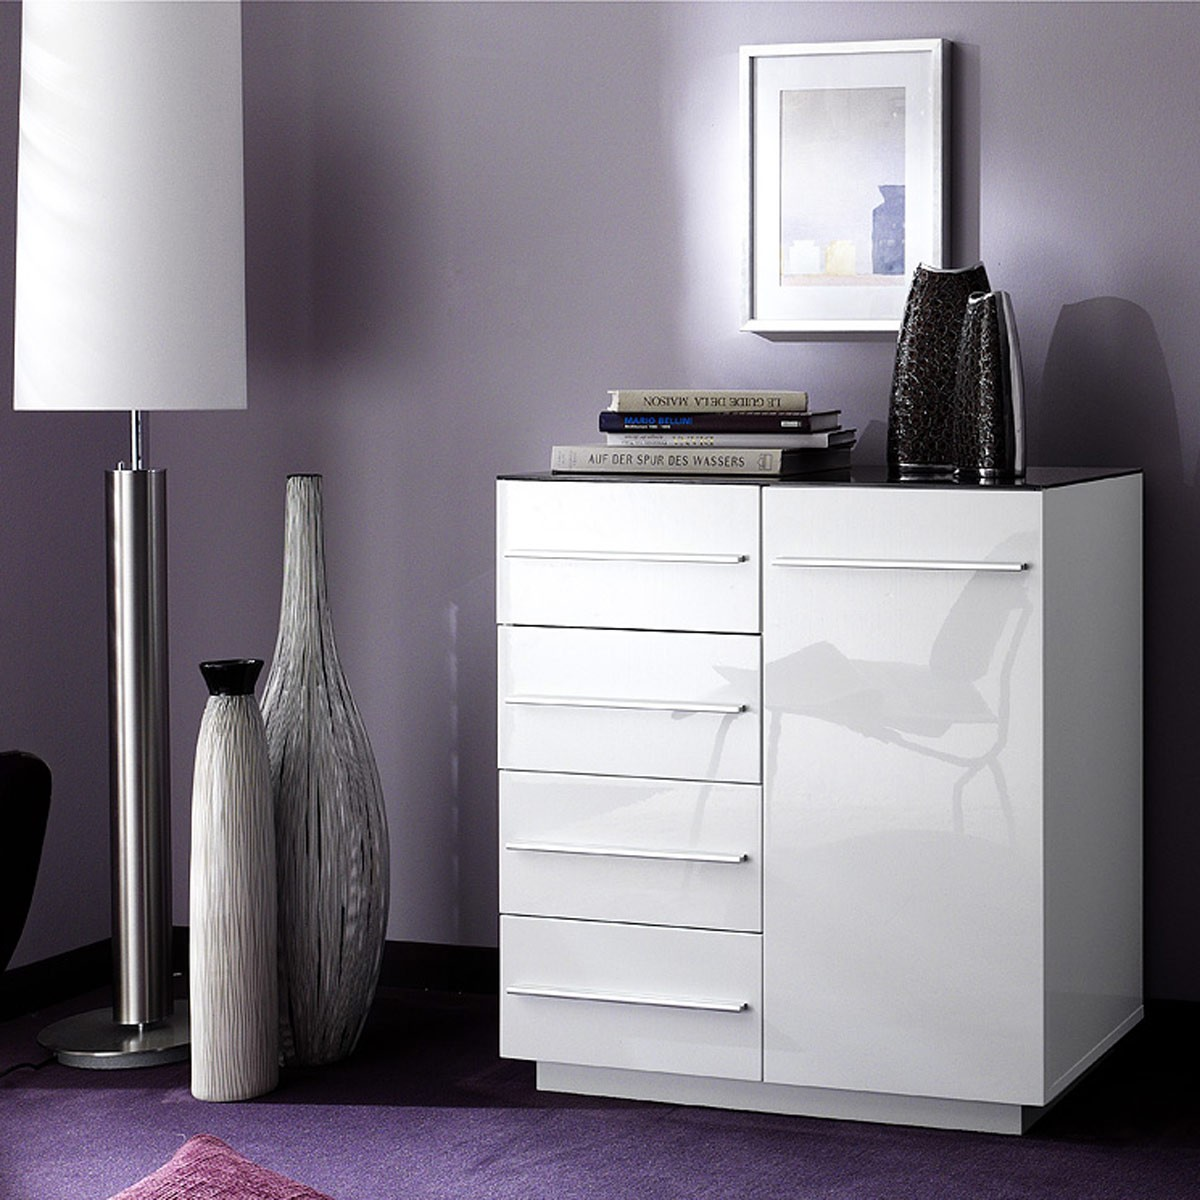 kommode anrichte sideboard schrank modern hochglanz wei. Black Bedroom Furniture Sets. Home Design Ideas